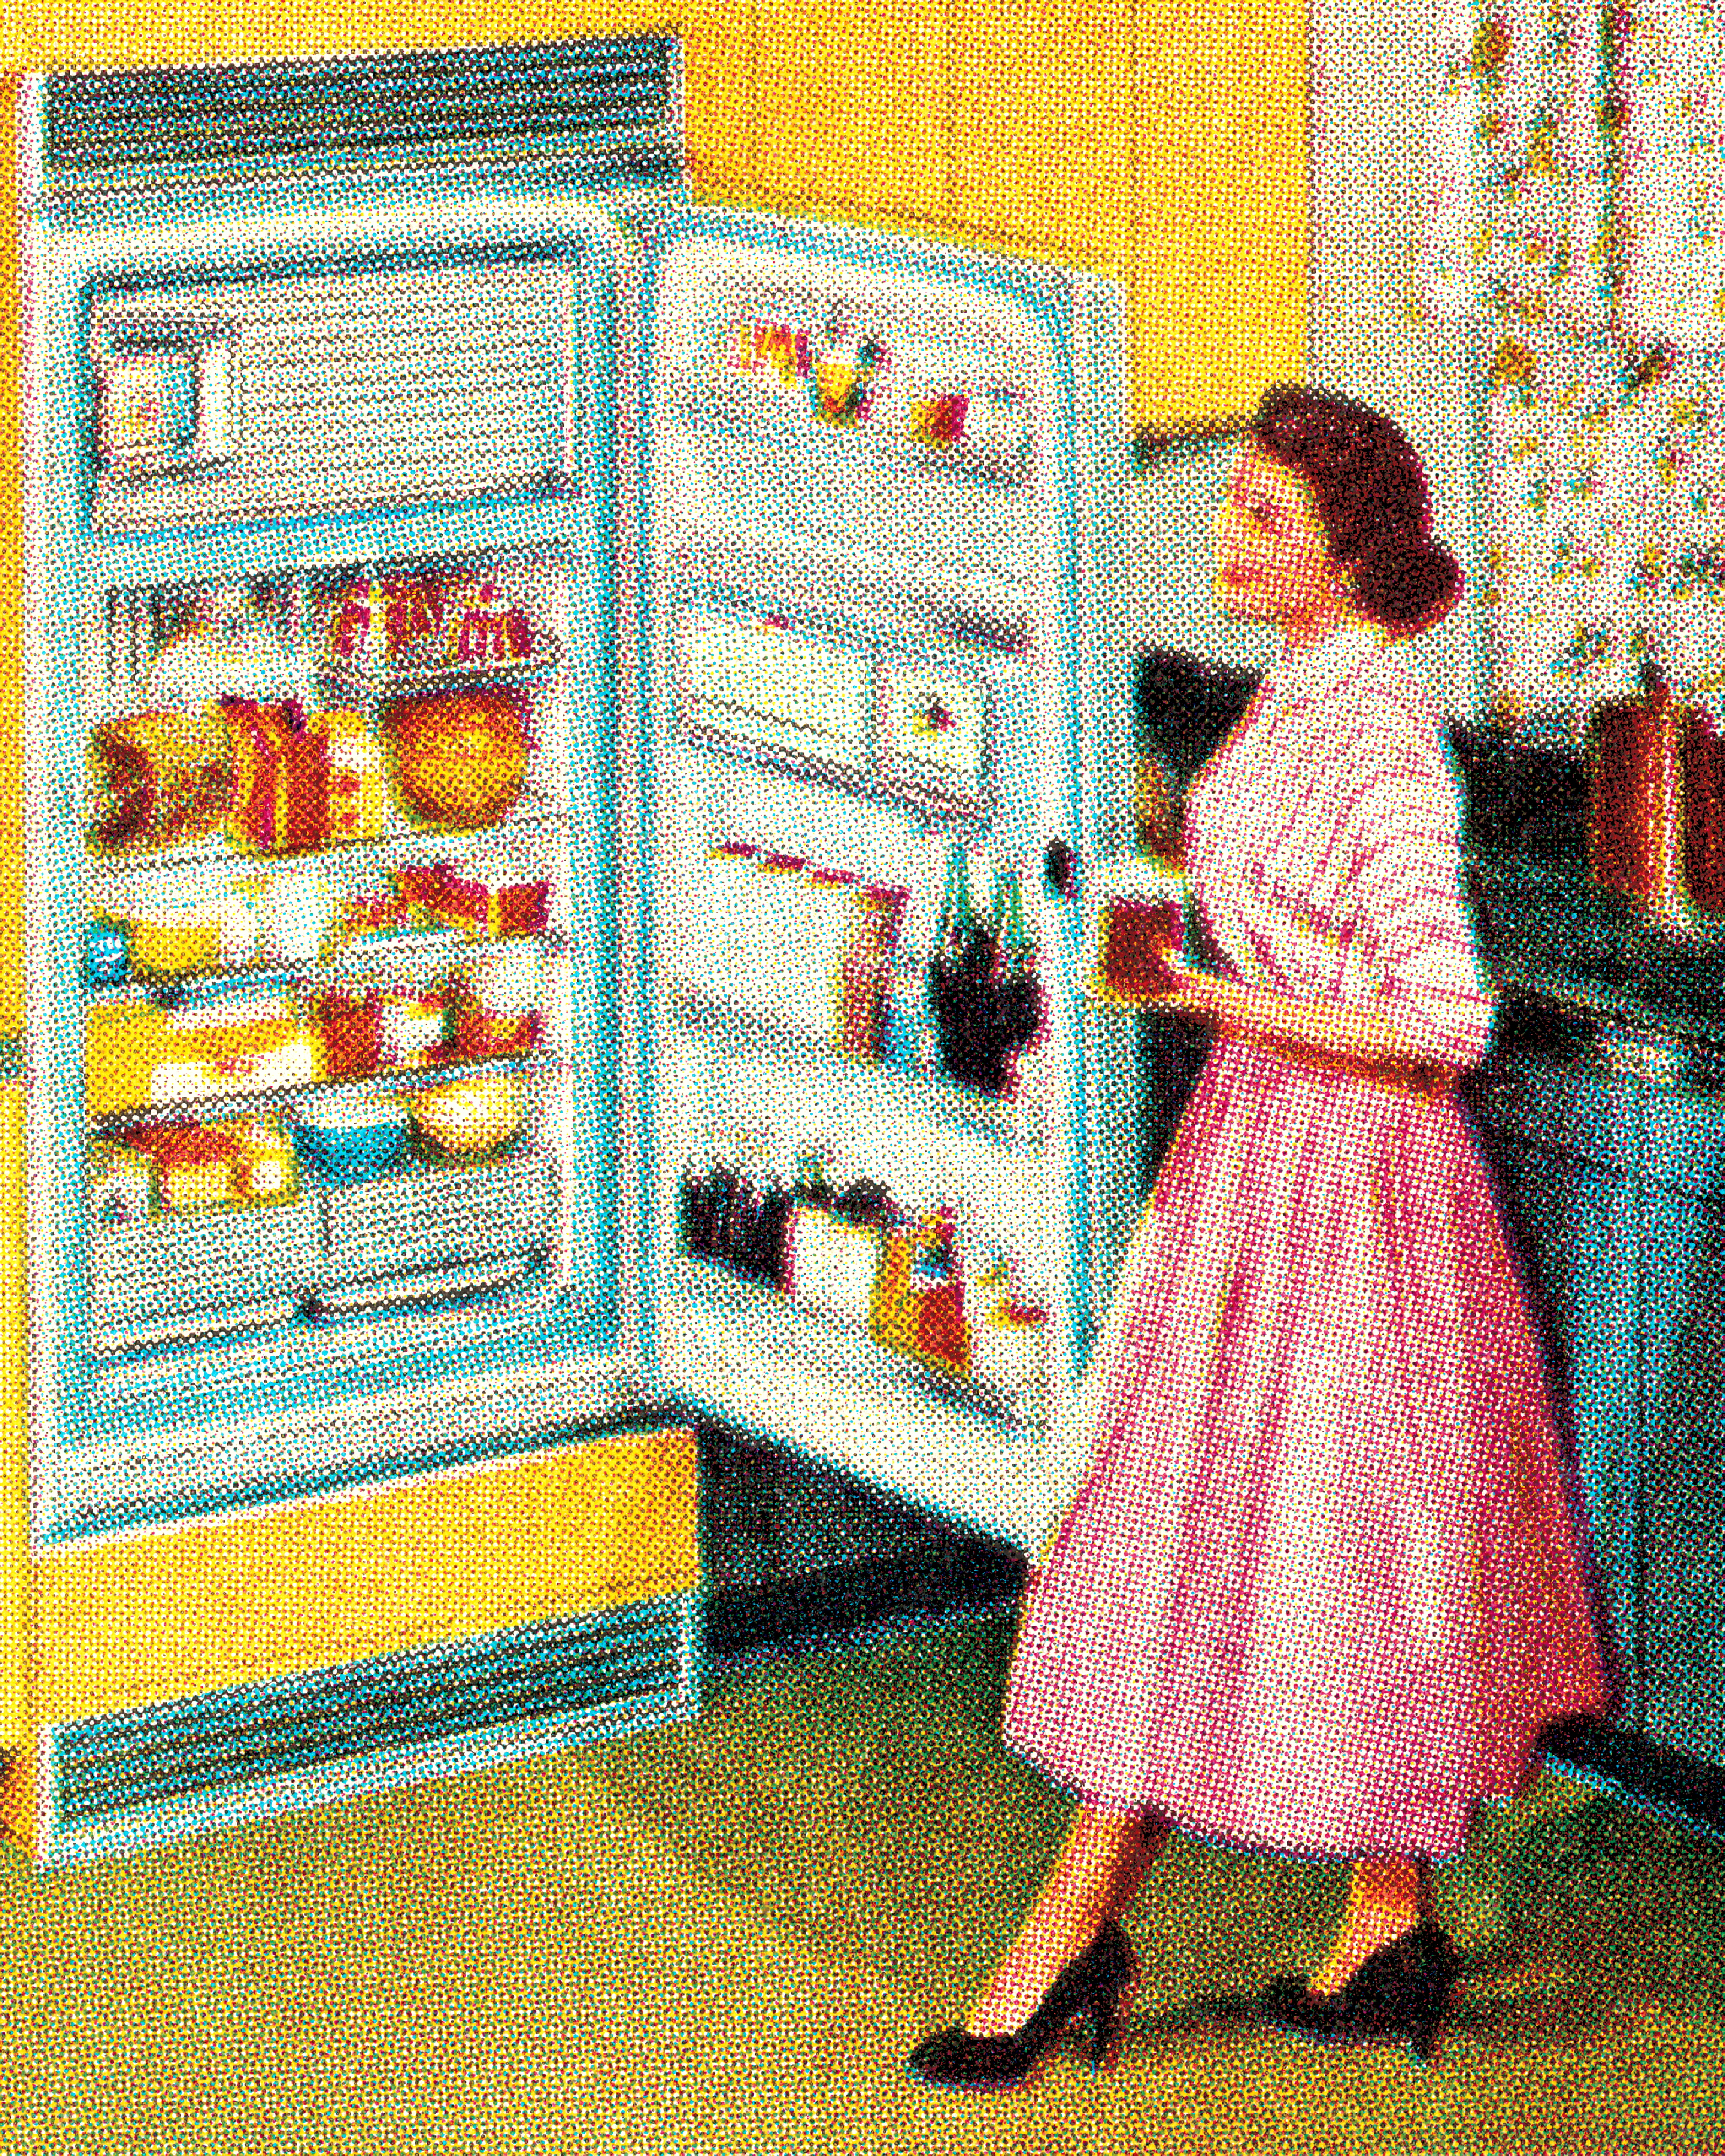 Woman at Open Refrigerator